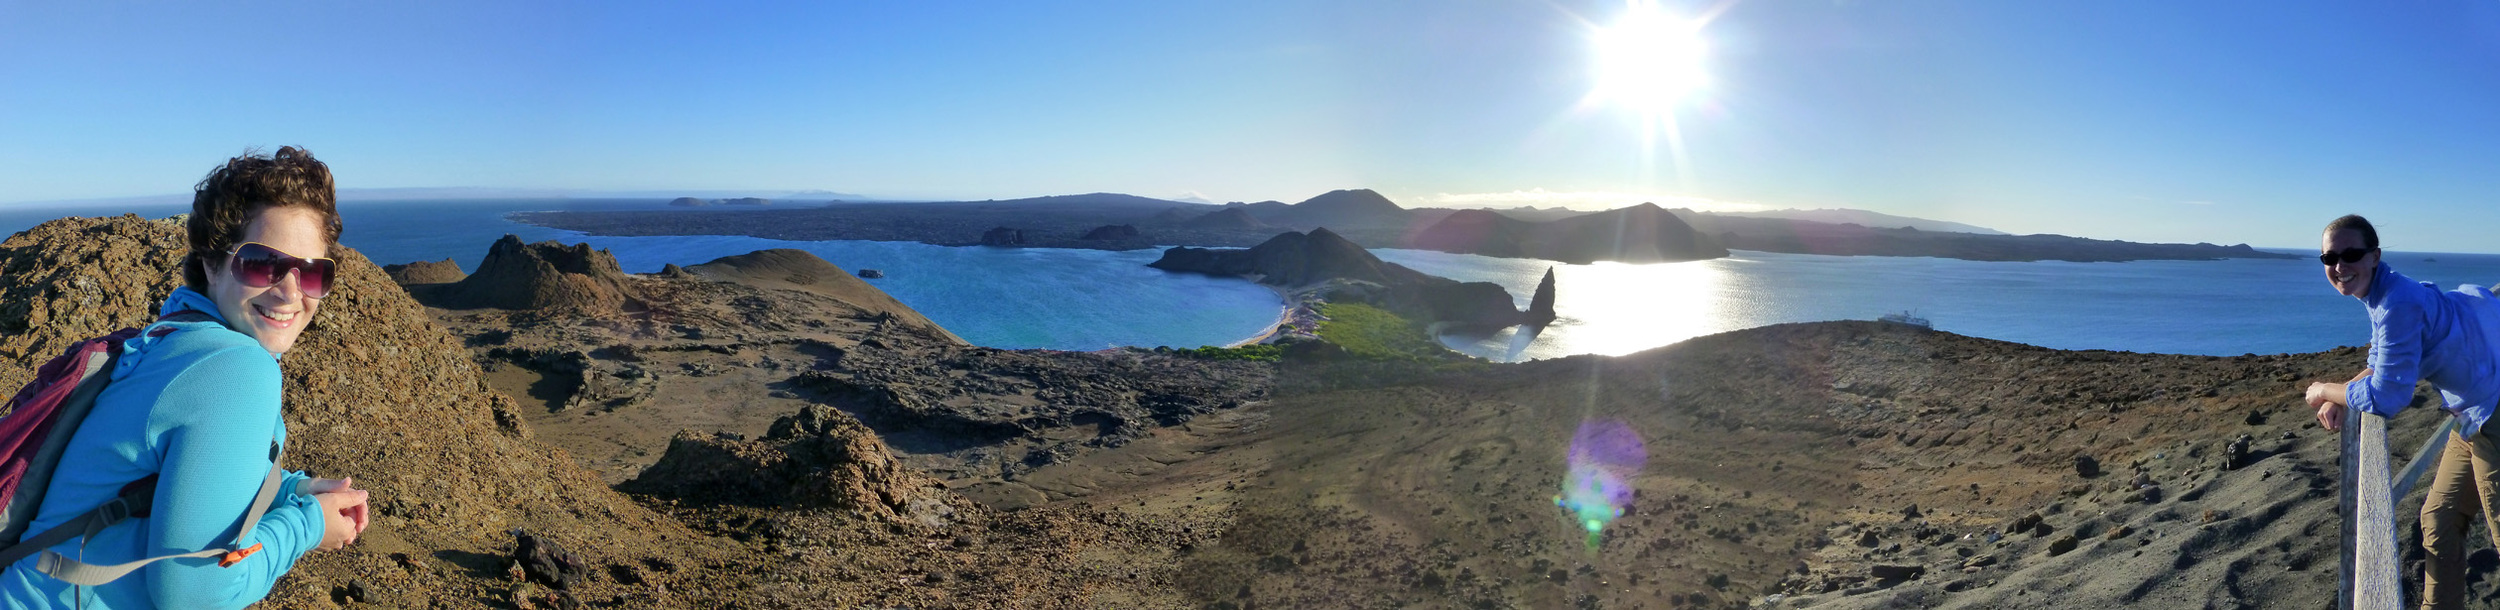 The view at the top of Bartolome Island.